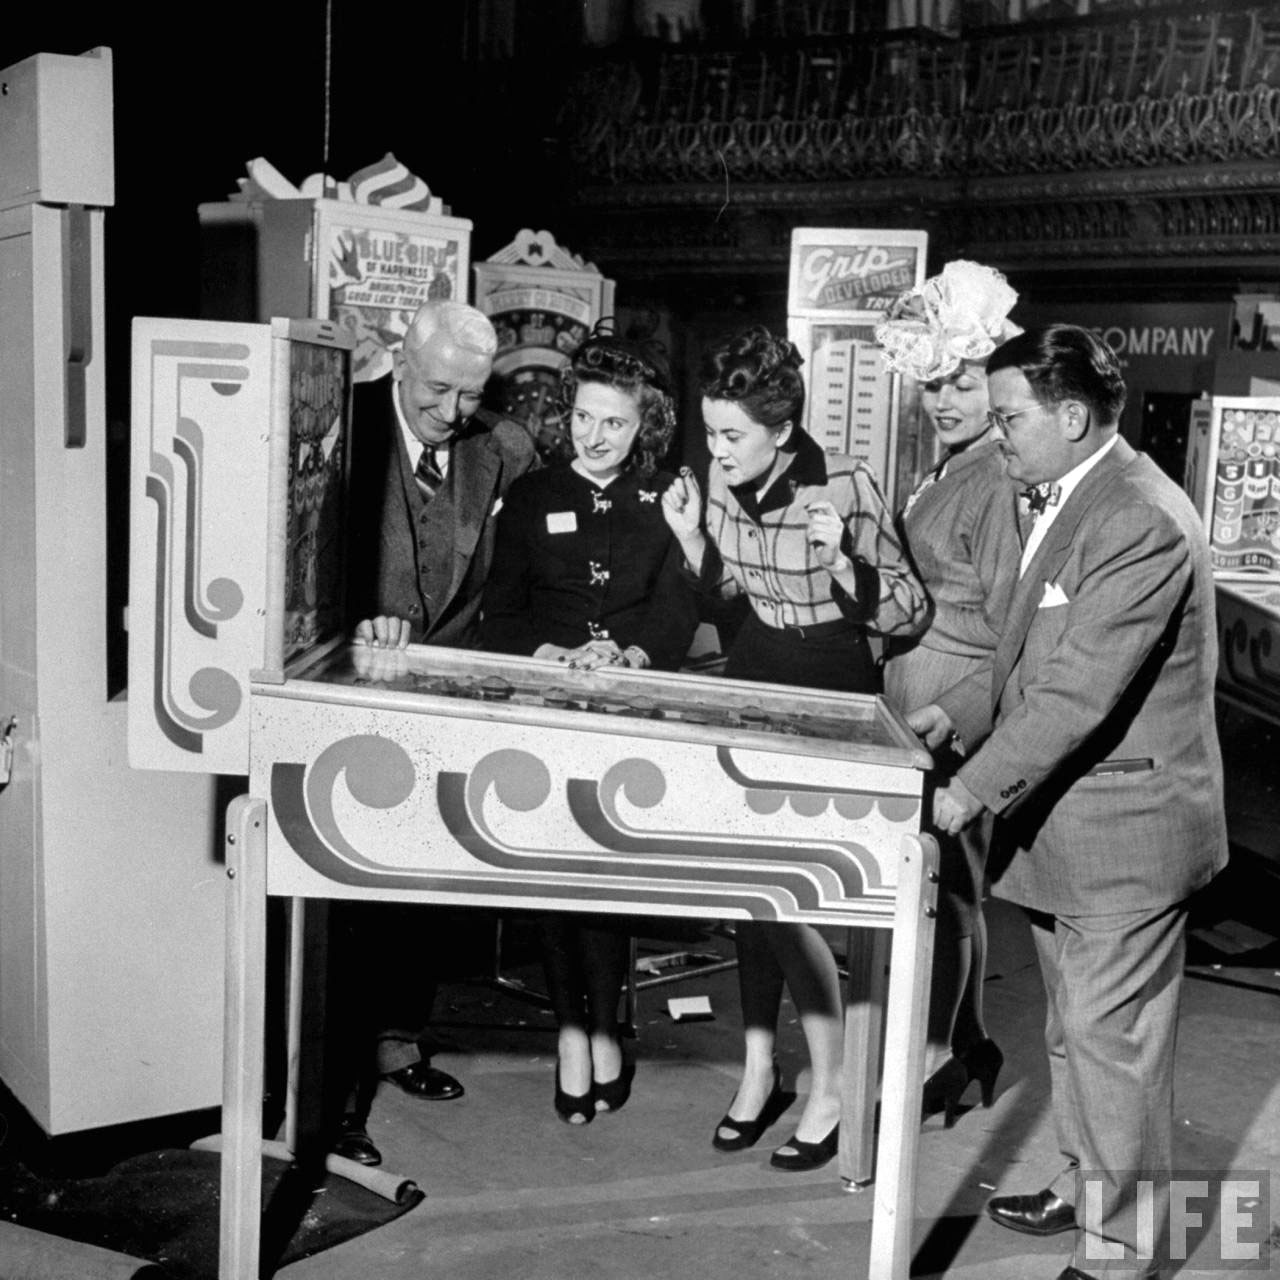 Photograph of a vintage coin-operated pinball machine, 1947 (Life magazine, Wallace Kirkland)